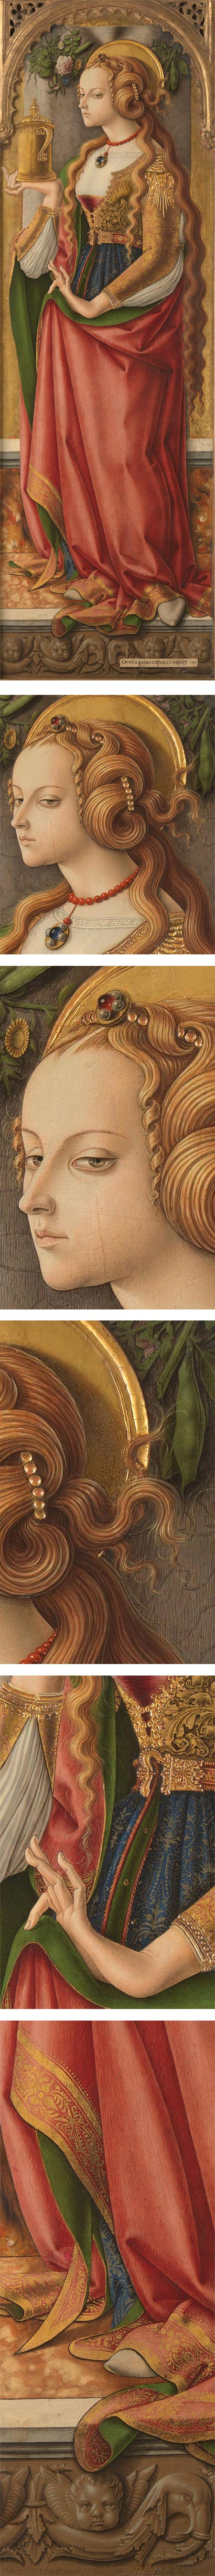 Mary Magdalene, Carlo Crivelli, Tempera on panel, 60 x 19 inches (152 x 49 cm), in the collection of the Rijksmuseum, 1480